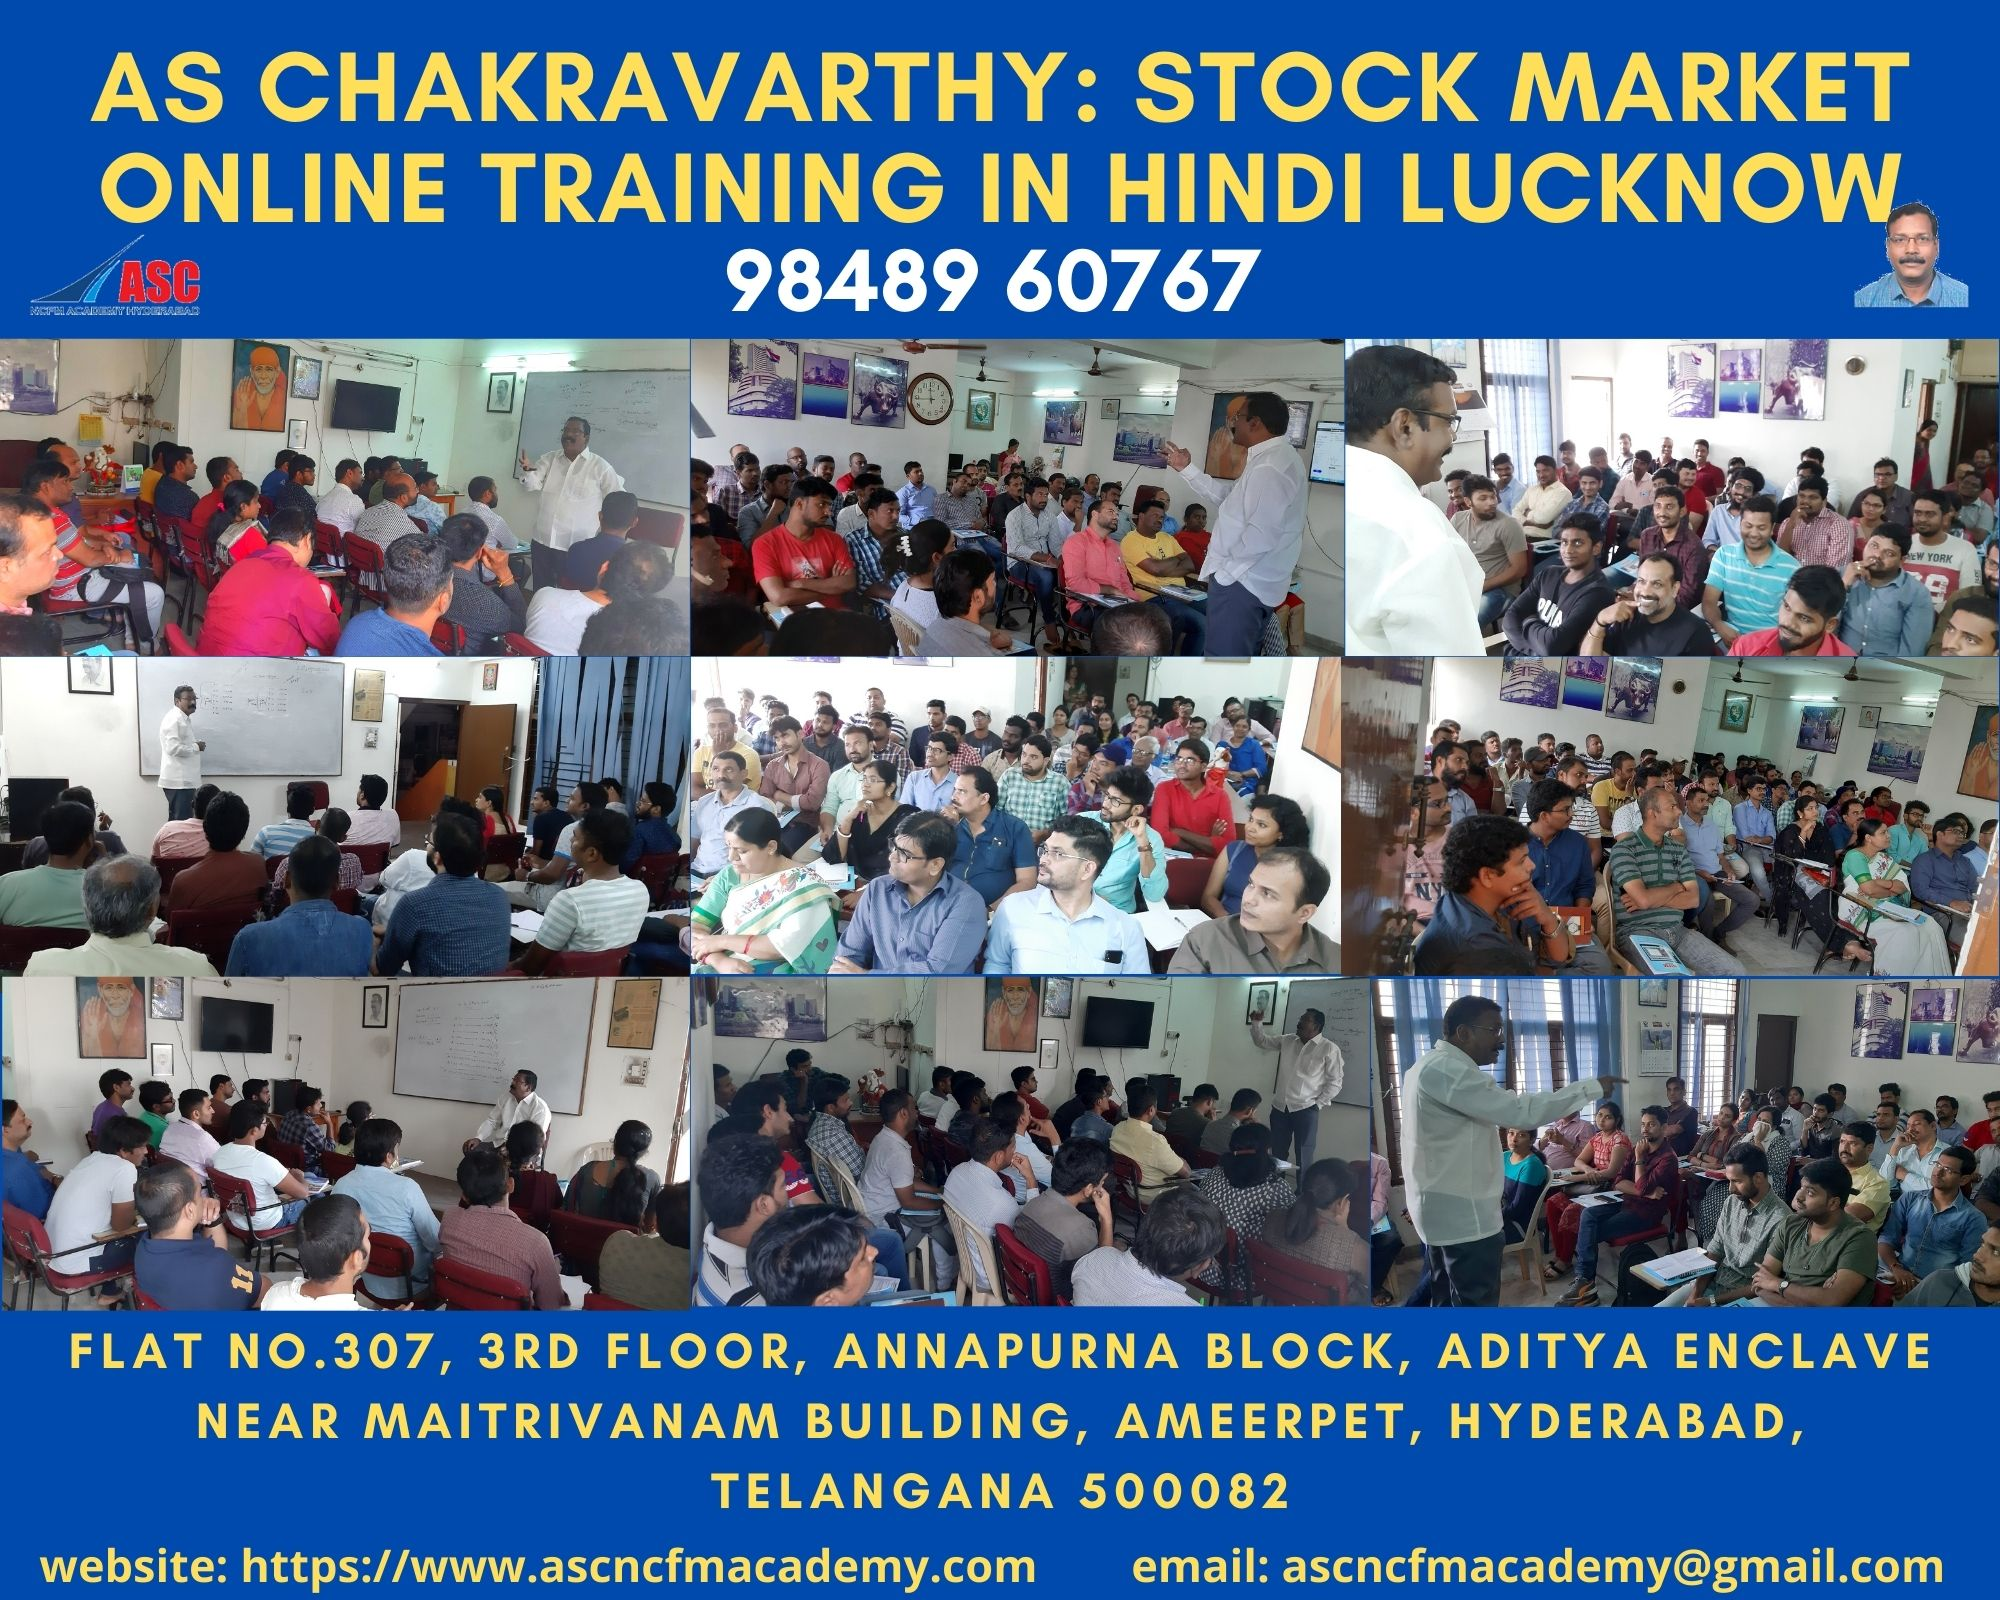 Online Stock Market Technical Training in Hindi Lucknow